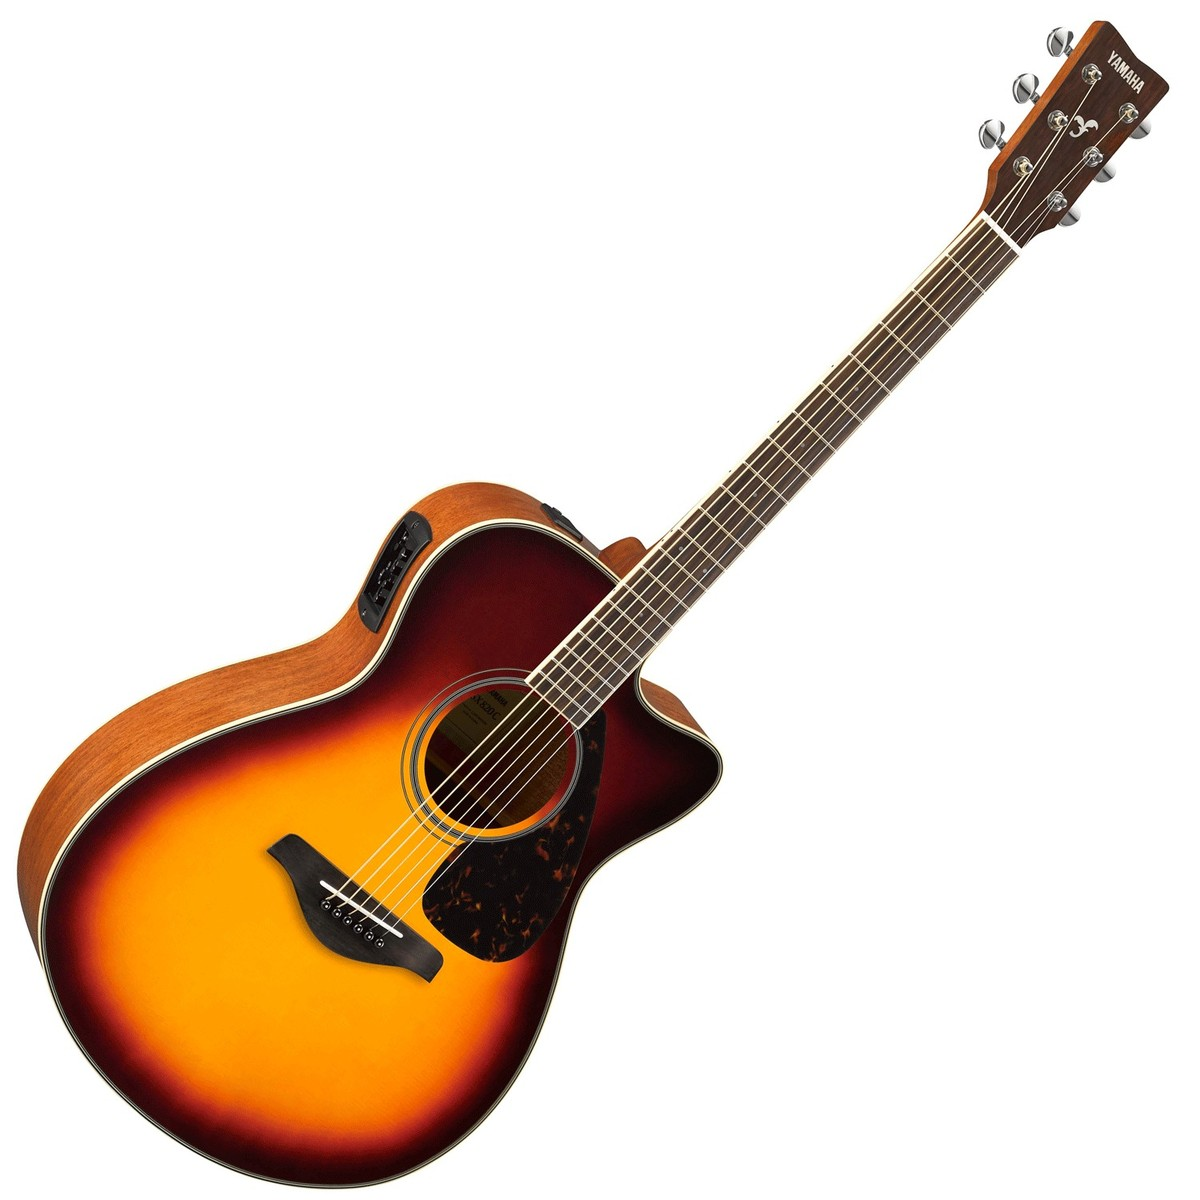 Yamaha fsx820c electro acoustic guitar brown sunburst at for Yamaha acoustic bass guitar